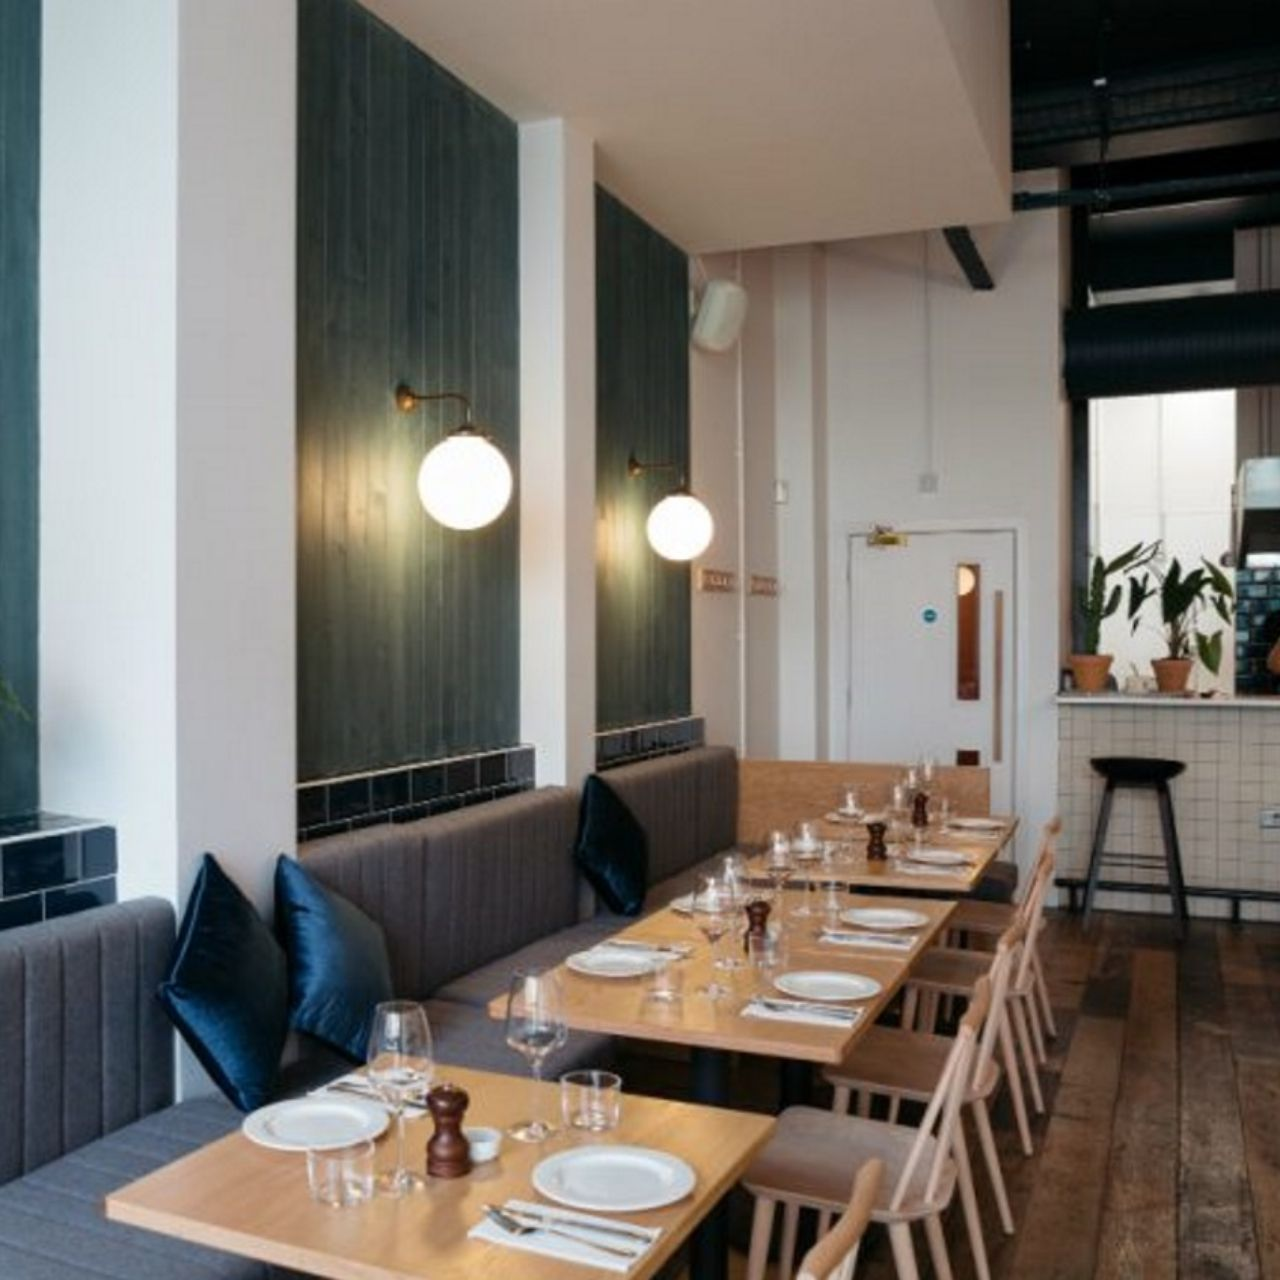 Host Ranelagh Co Dublin Opentable